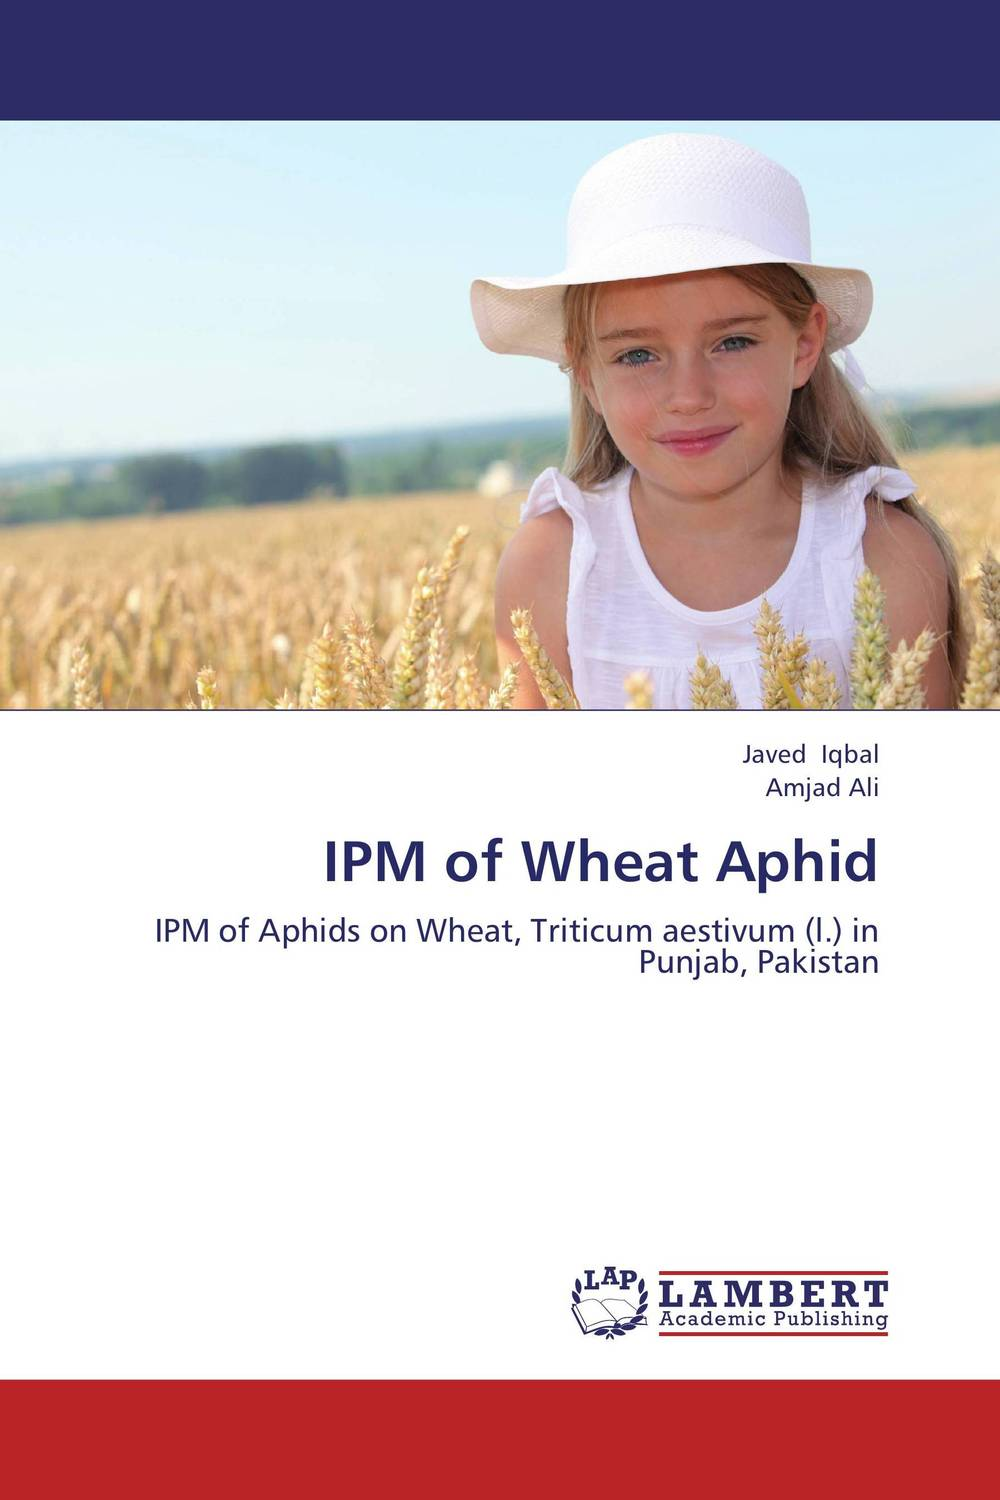 IPM of Wheat Aphid evaluation of lucern as a predator source for wheat aphids